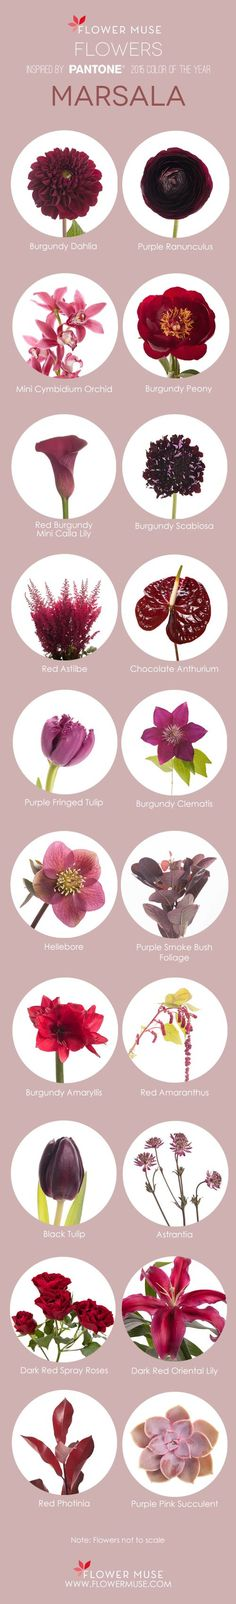 We've put together a board of Marsala flowers inspired by Pantone's 2015 color of the year. You'll find peonies, tulips & more in shades inspired by Marsala Floral Wedding, Fall Wedding, Wedding Colors, Wedding Bouquets, Dream Wedding, Trendy Wedding, Wedding Cakes, Fall Bouquets, Maroon Wedding